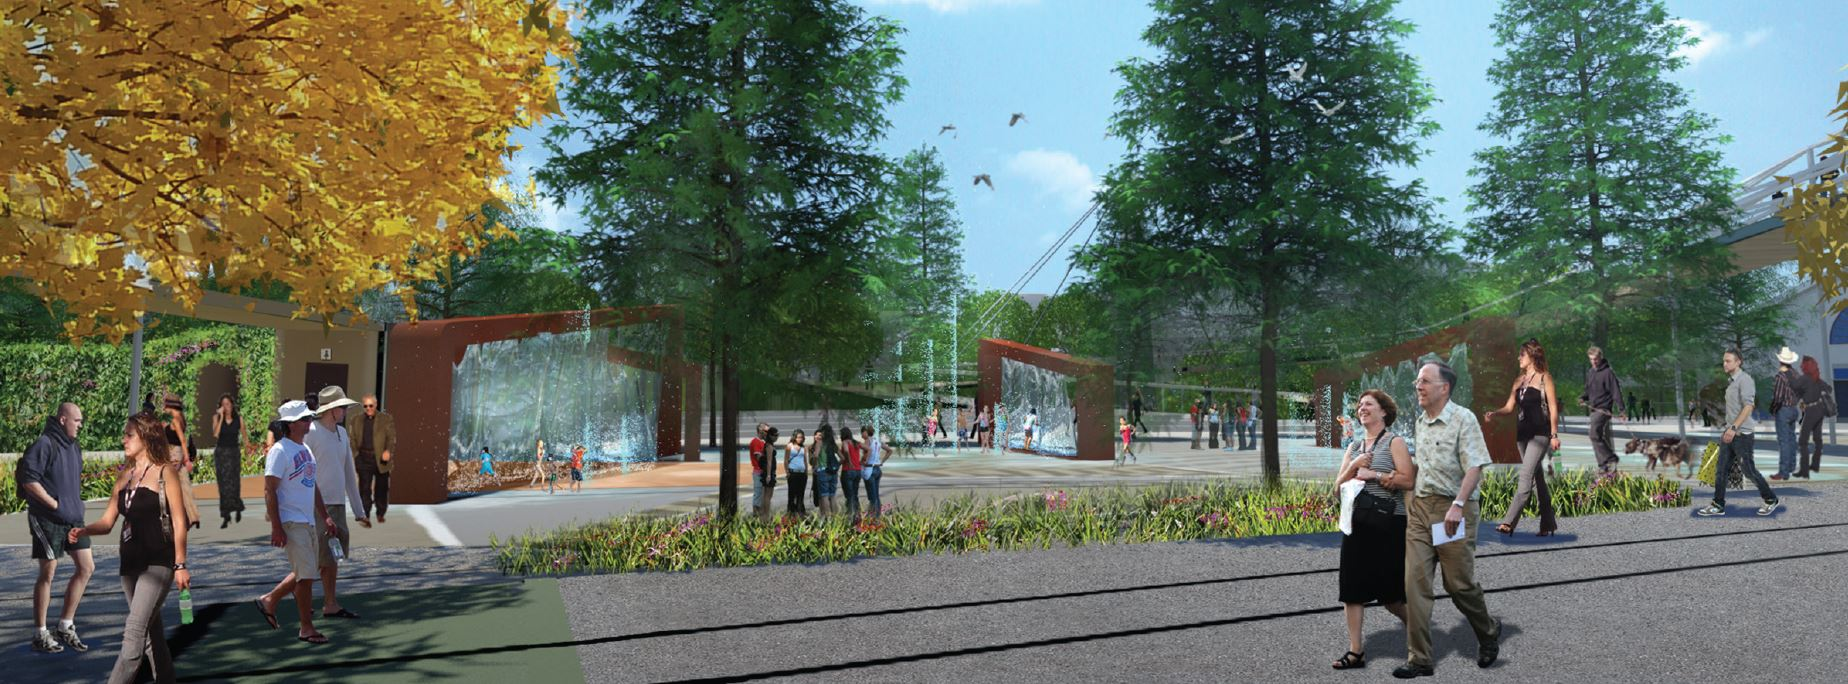 Railway Parklands artists impression